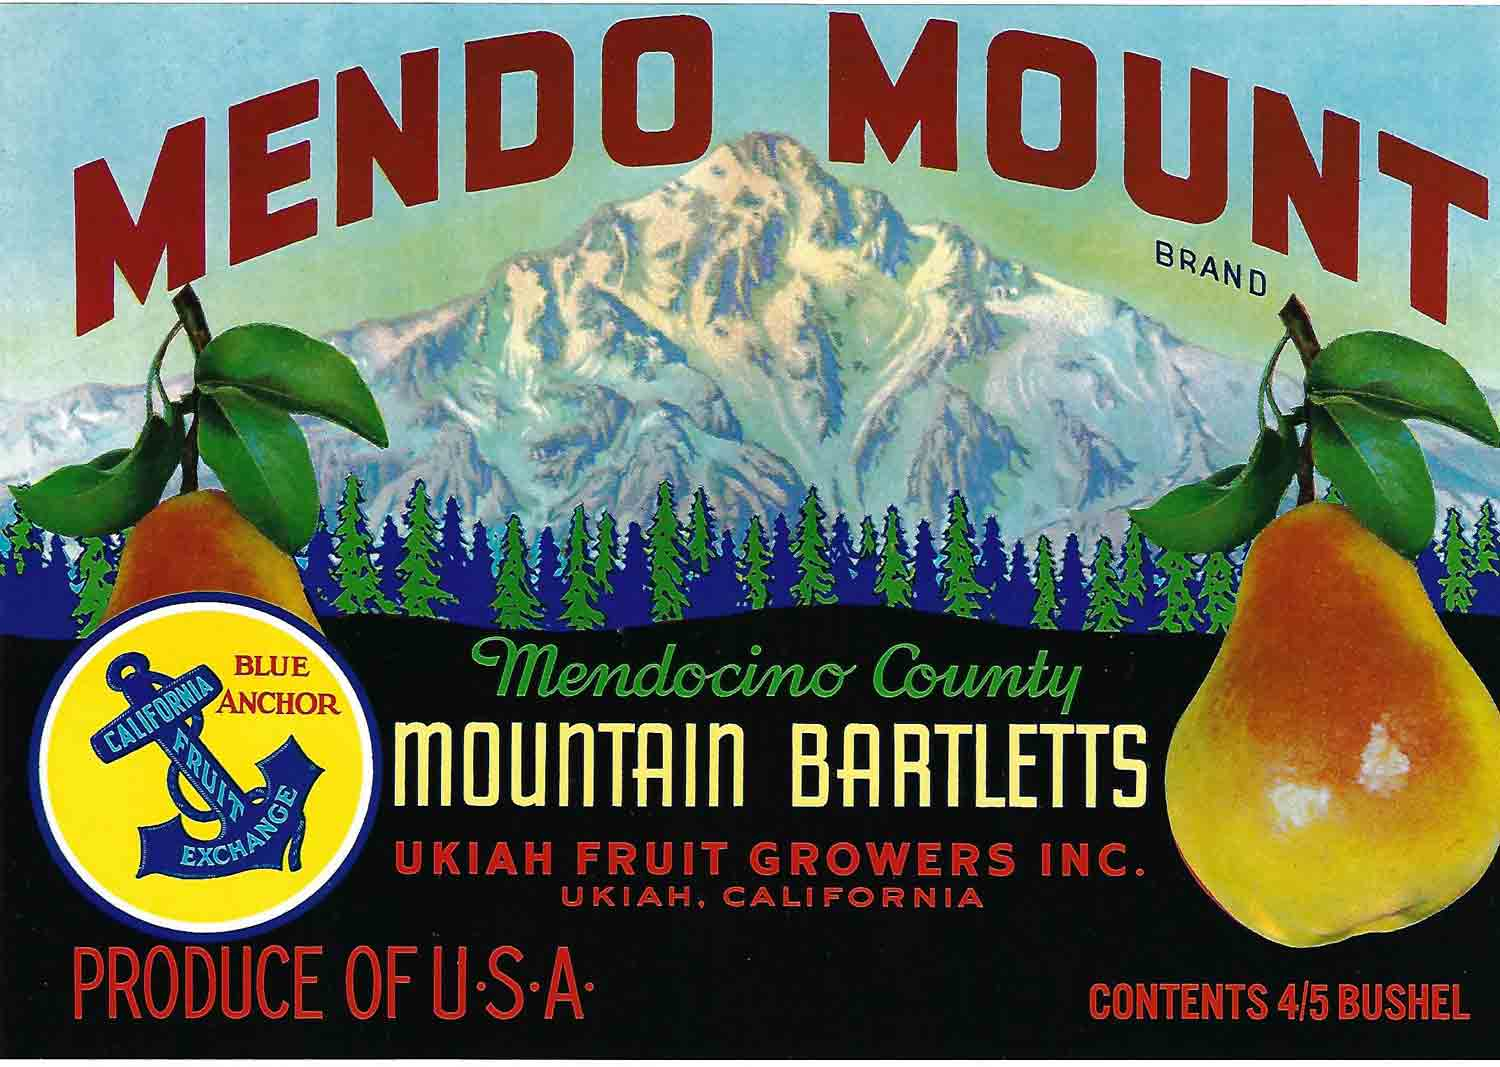 Mendo Mount Brand, Original Crate Label, Circa 1960's, 11x7.5